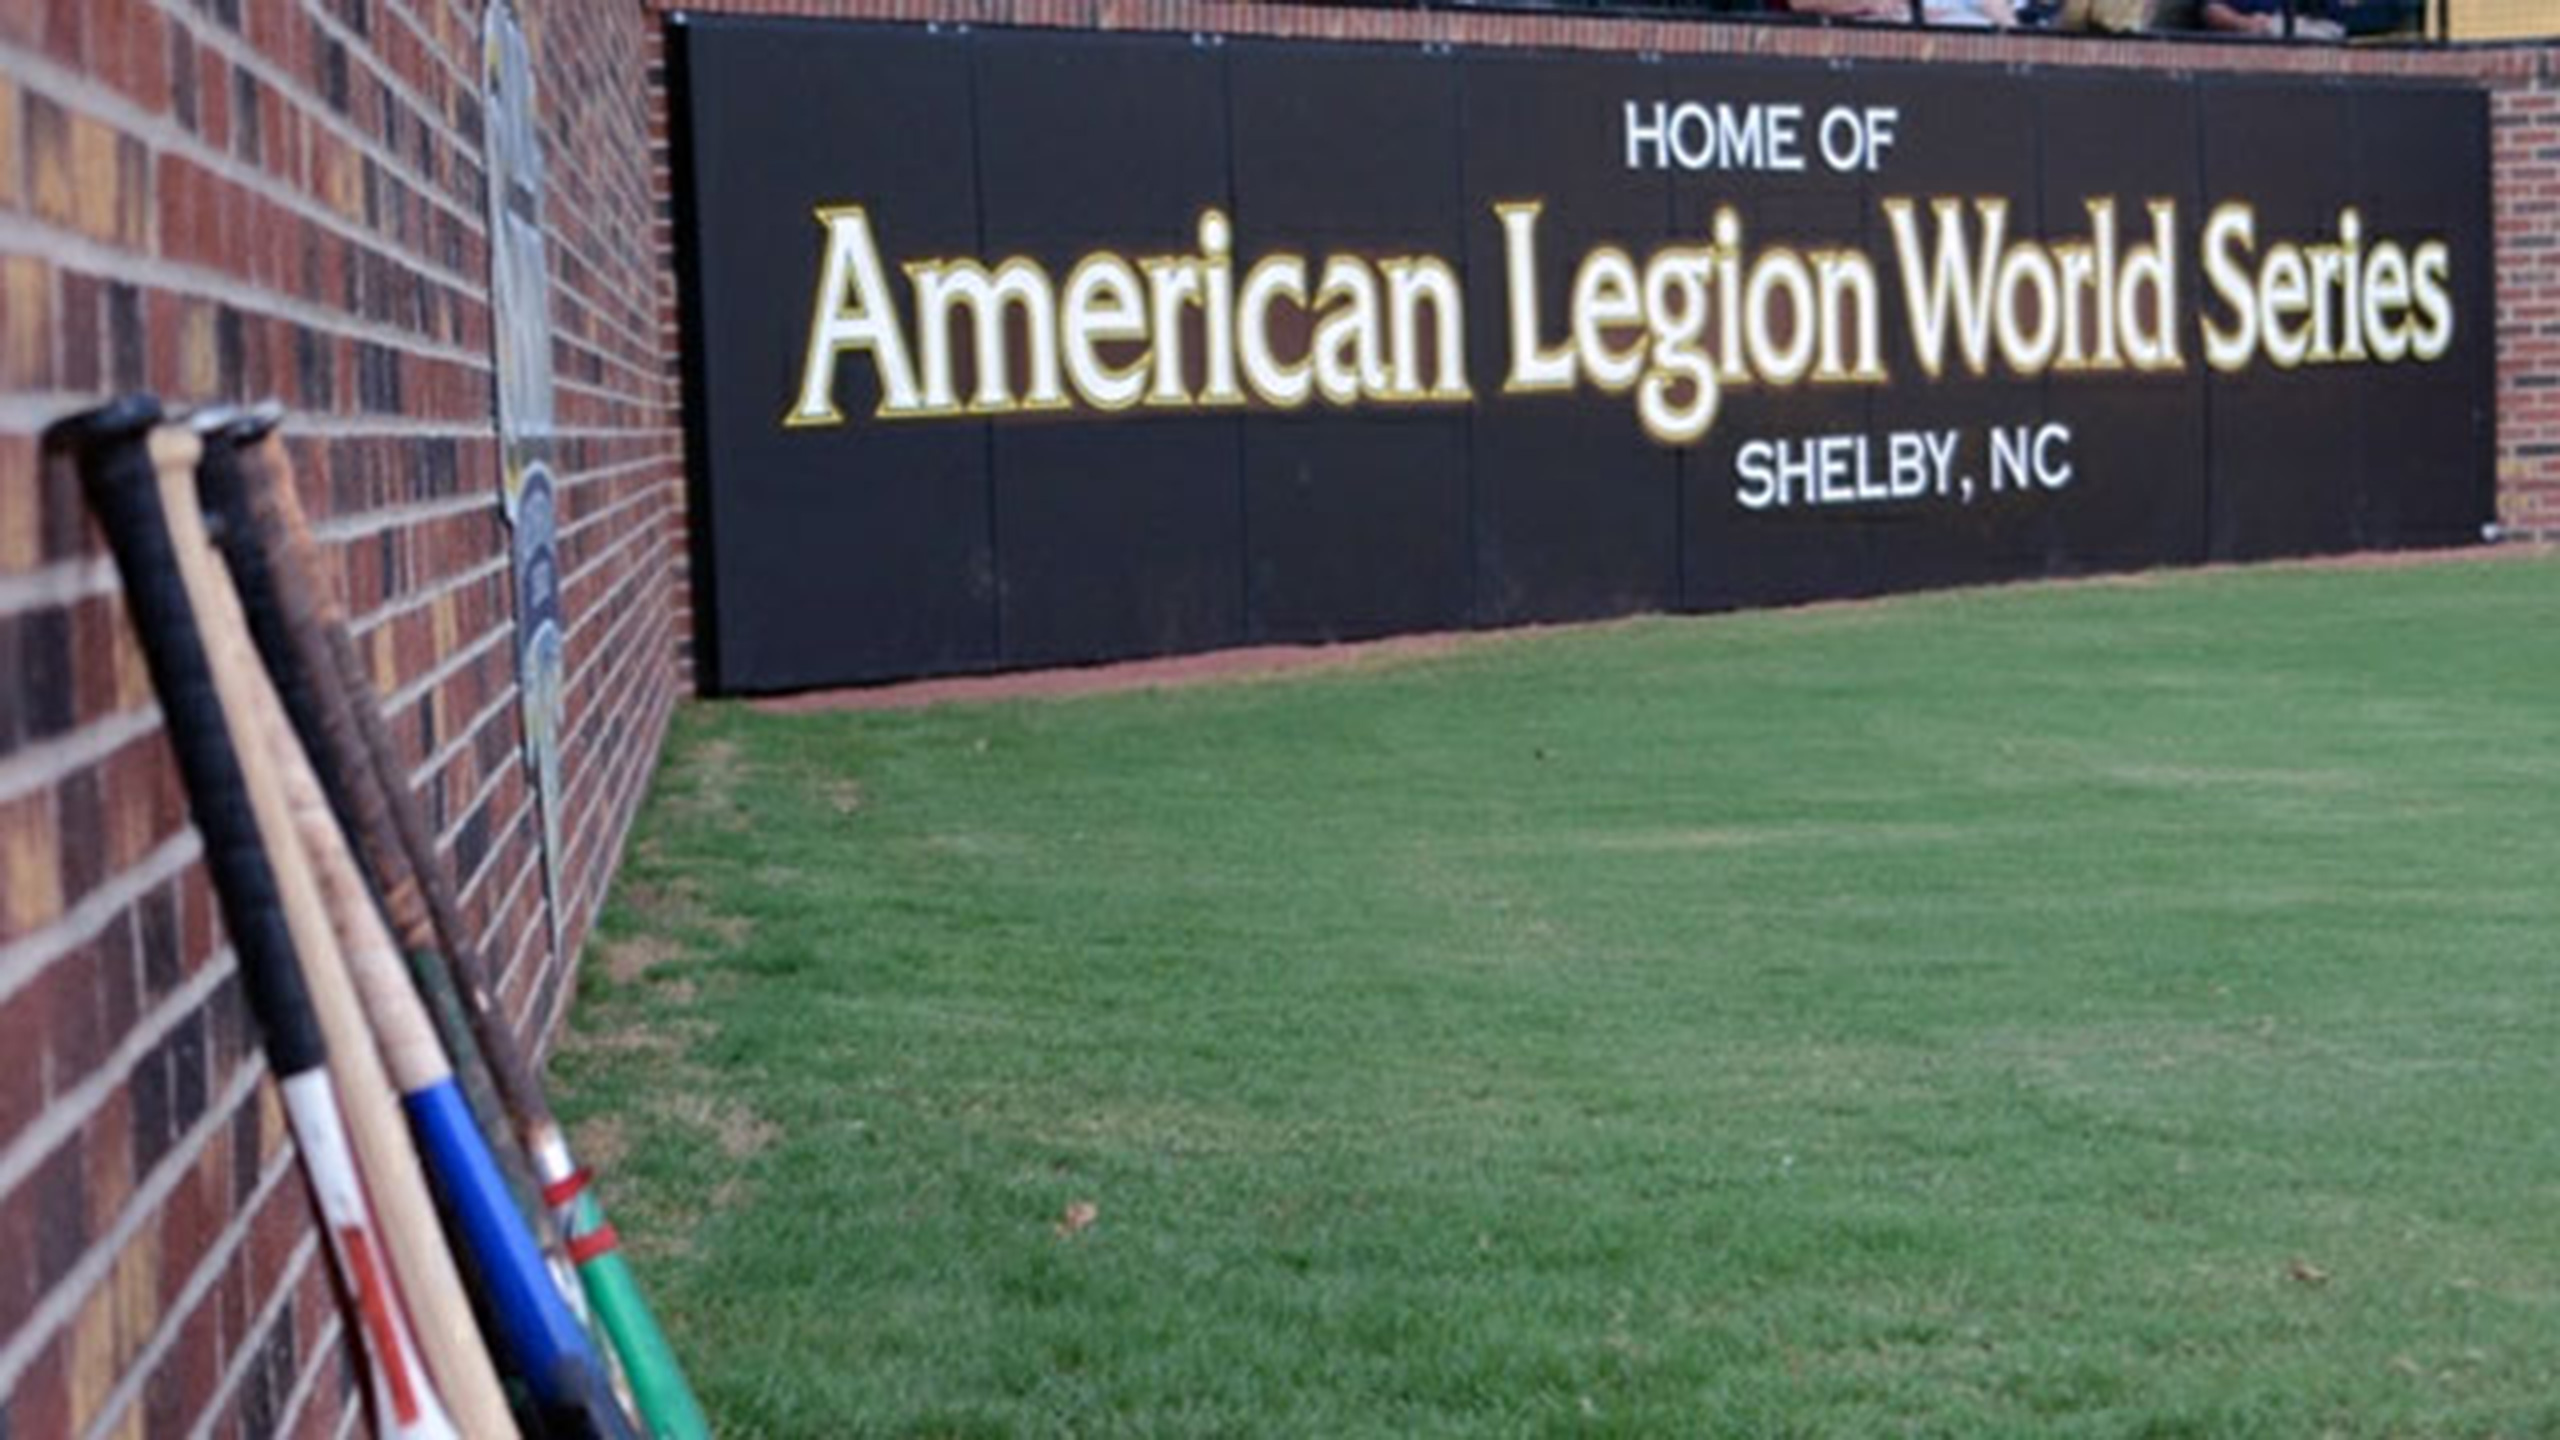 Great Lakes vs. Northwest (American Legion) (re-air)